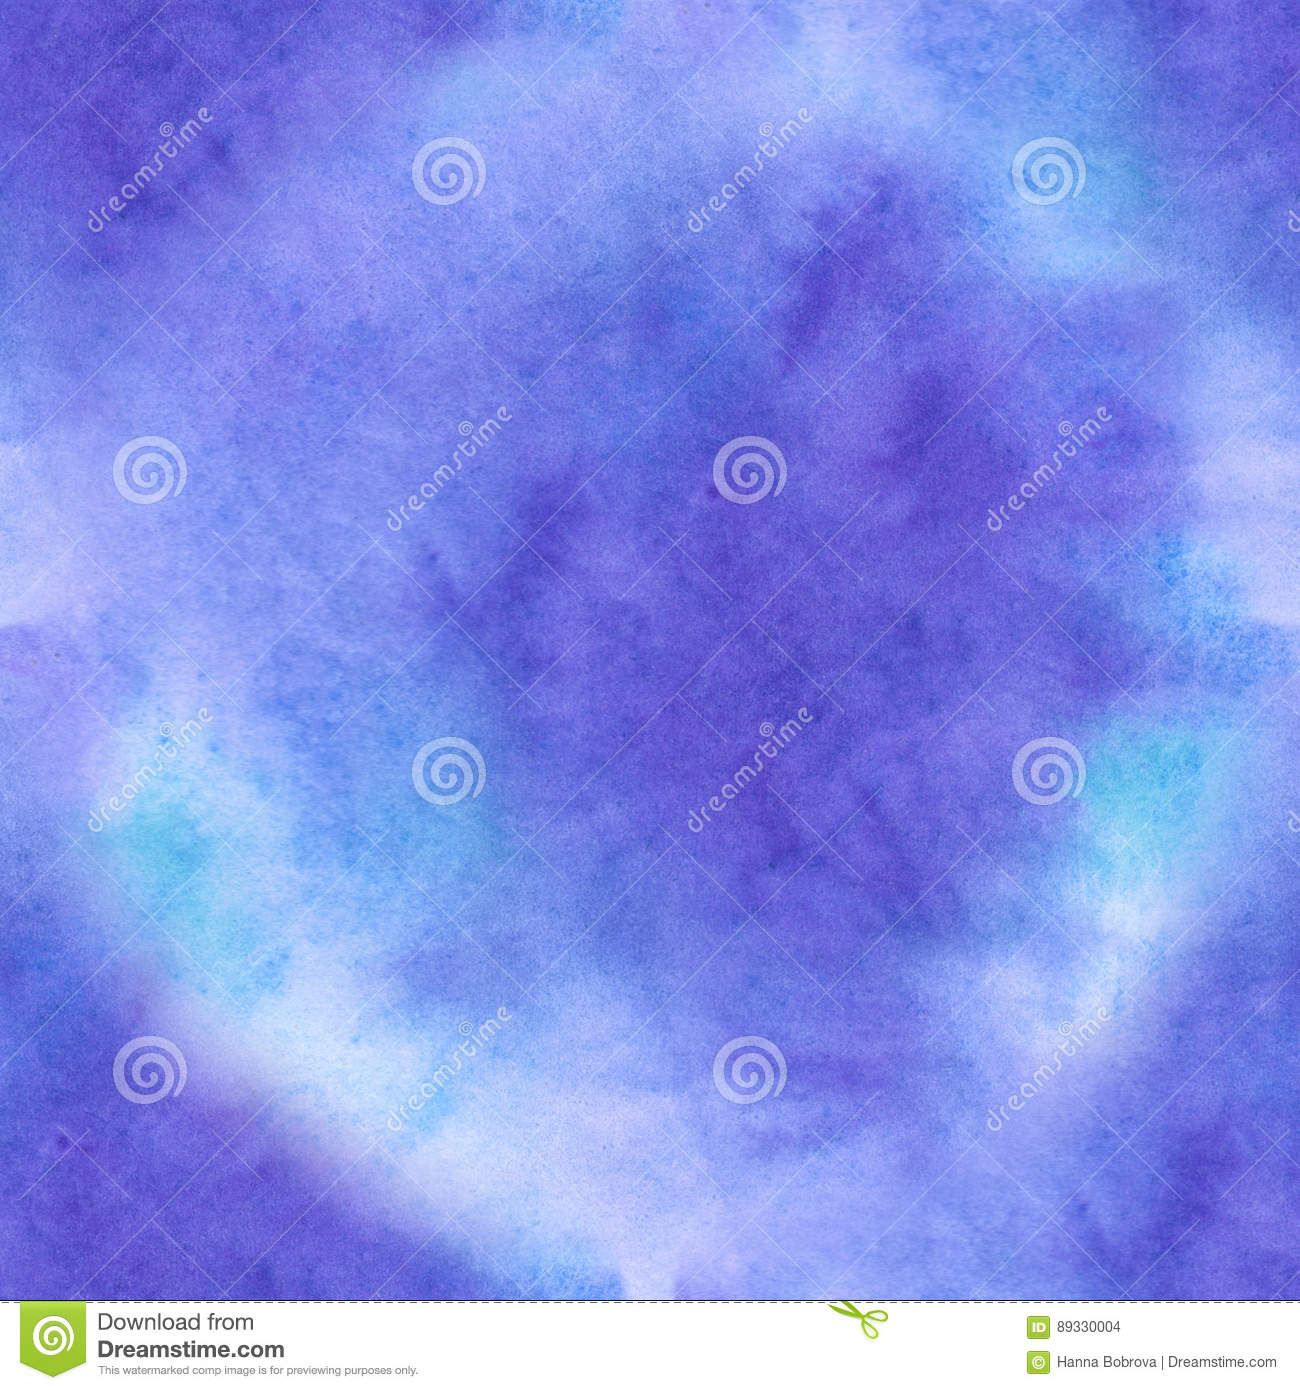 Blue Watercolor seamless texture abstract ackground watercolor in old paper